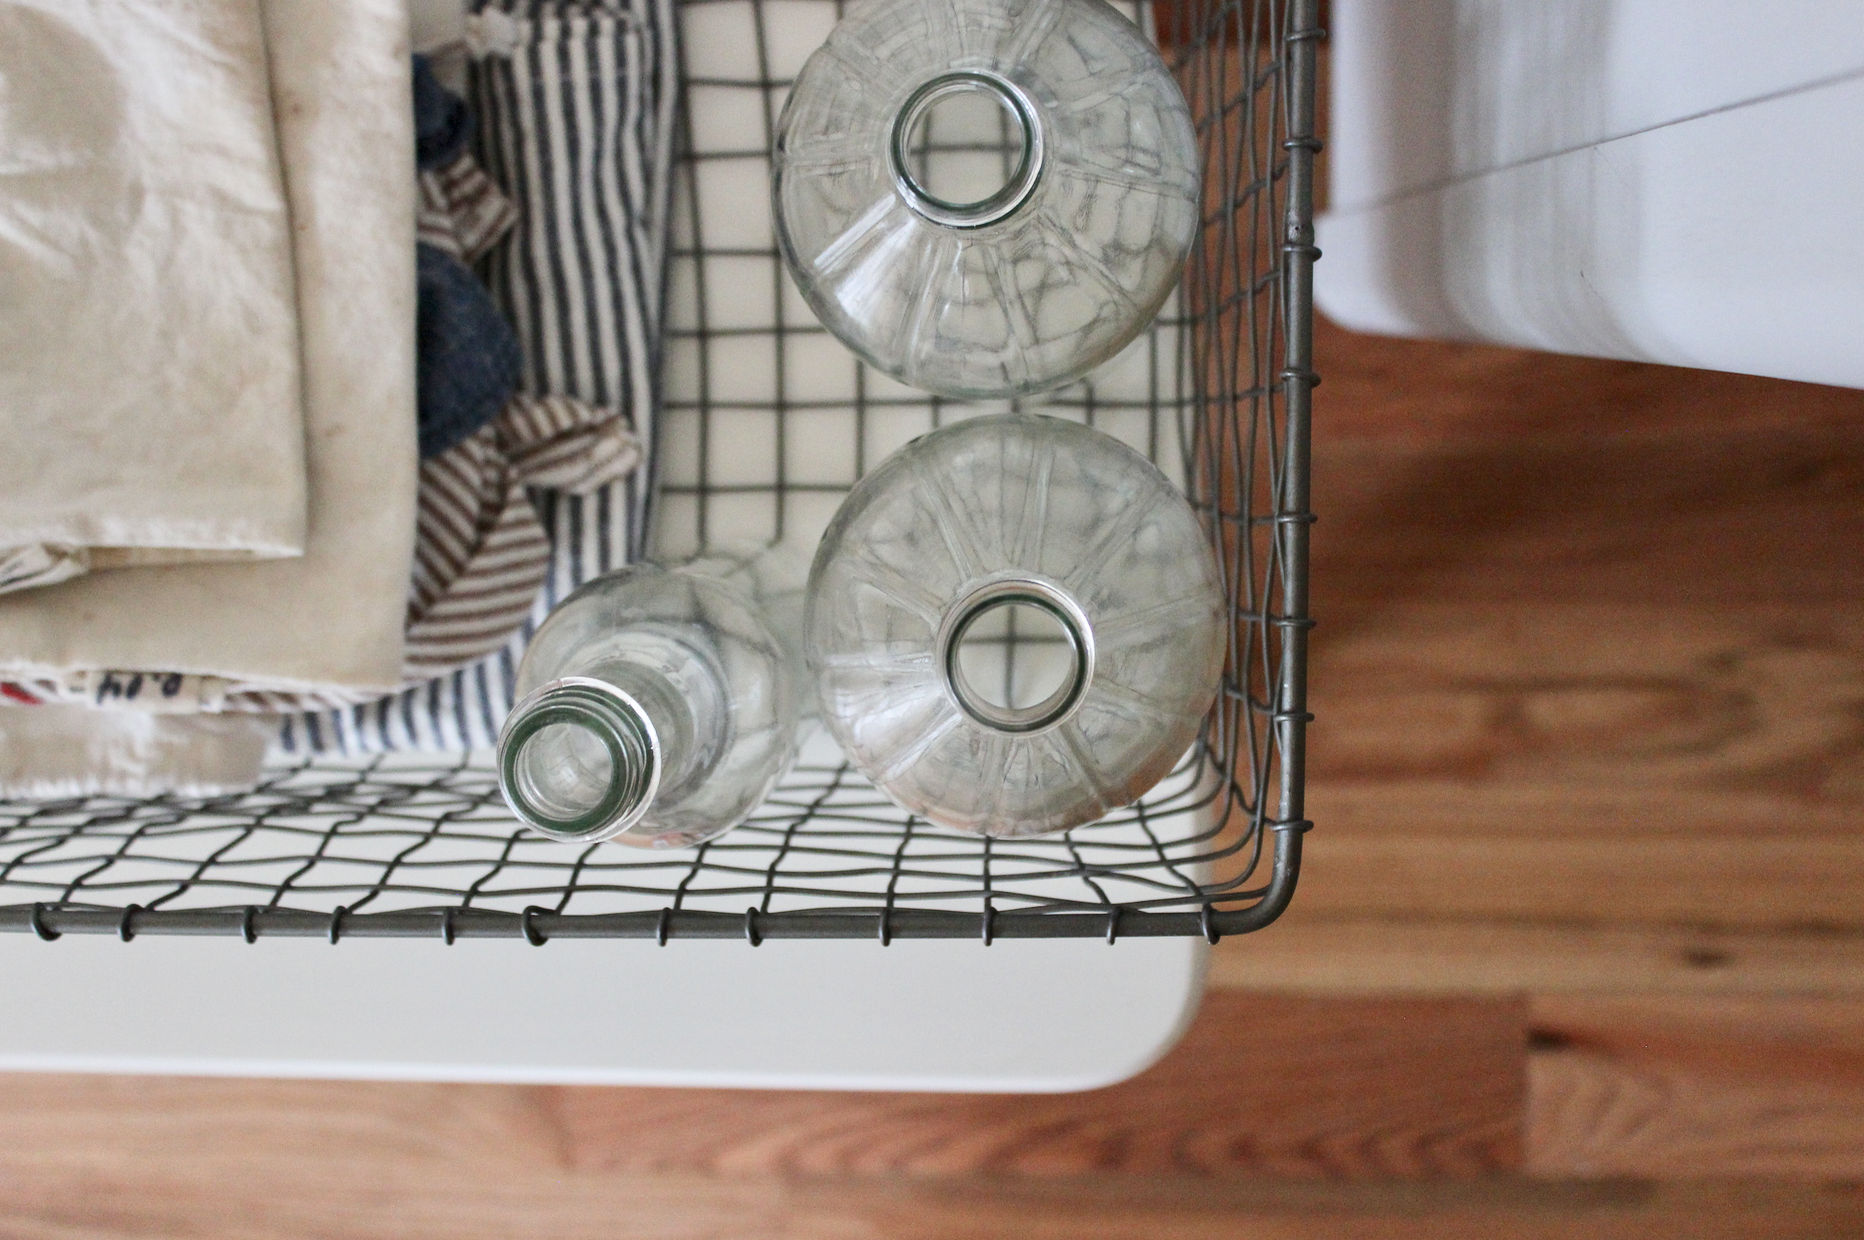 Clean out old vinegar bottles to fill with bulk liquids in a zero waste home   Litterless